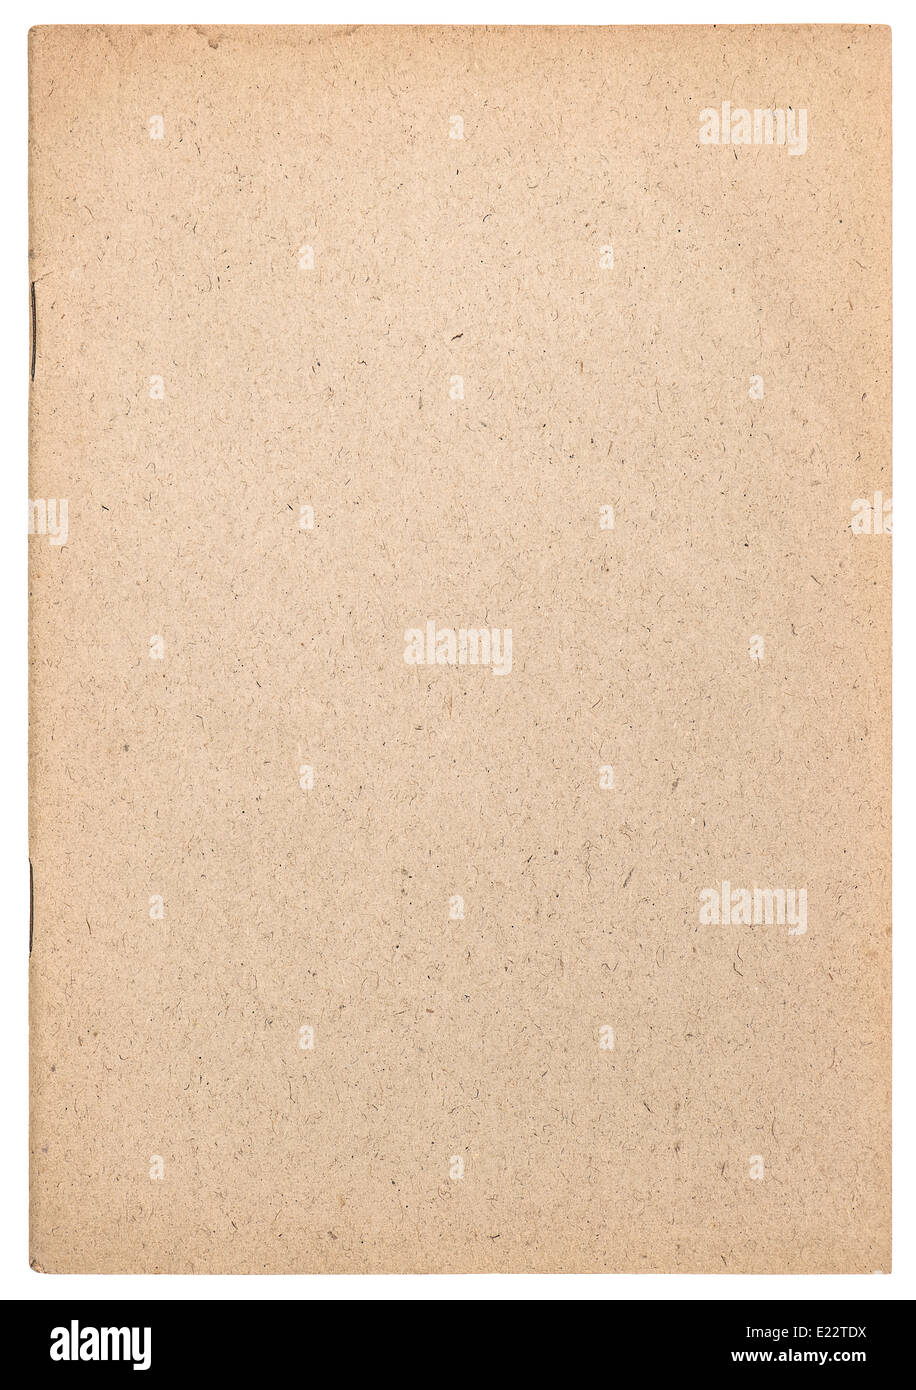 old book cover isolated on white background. paper texture - Stock Image